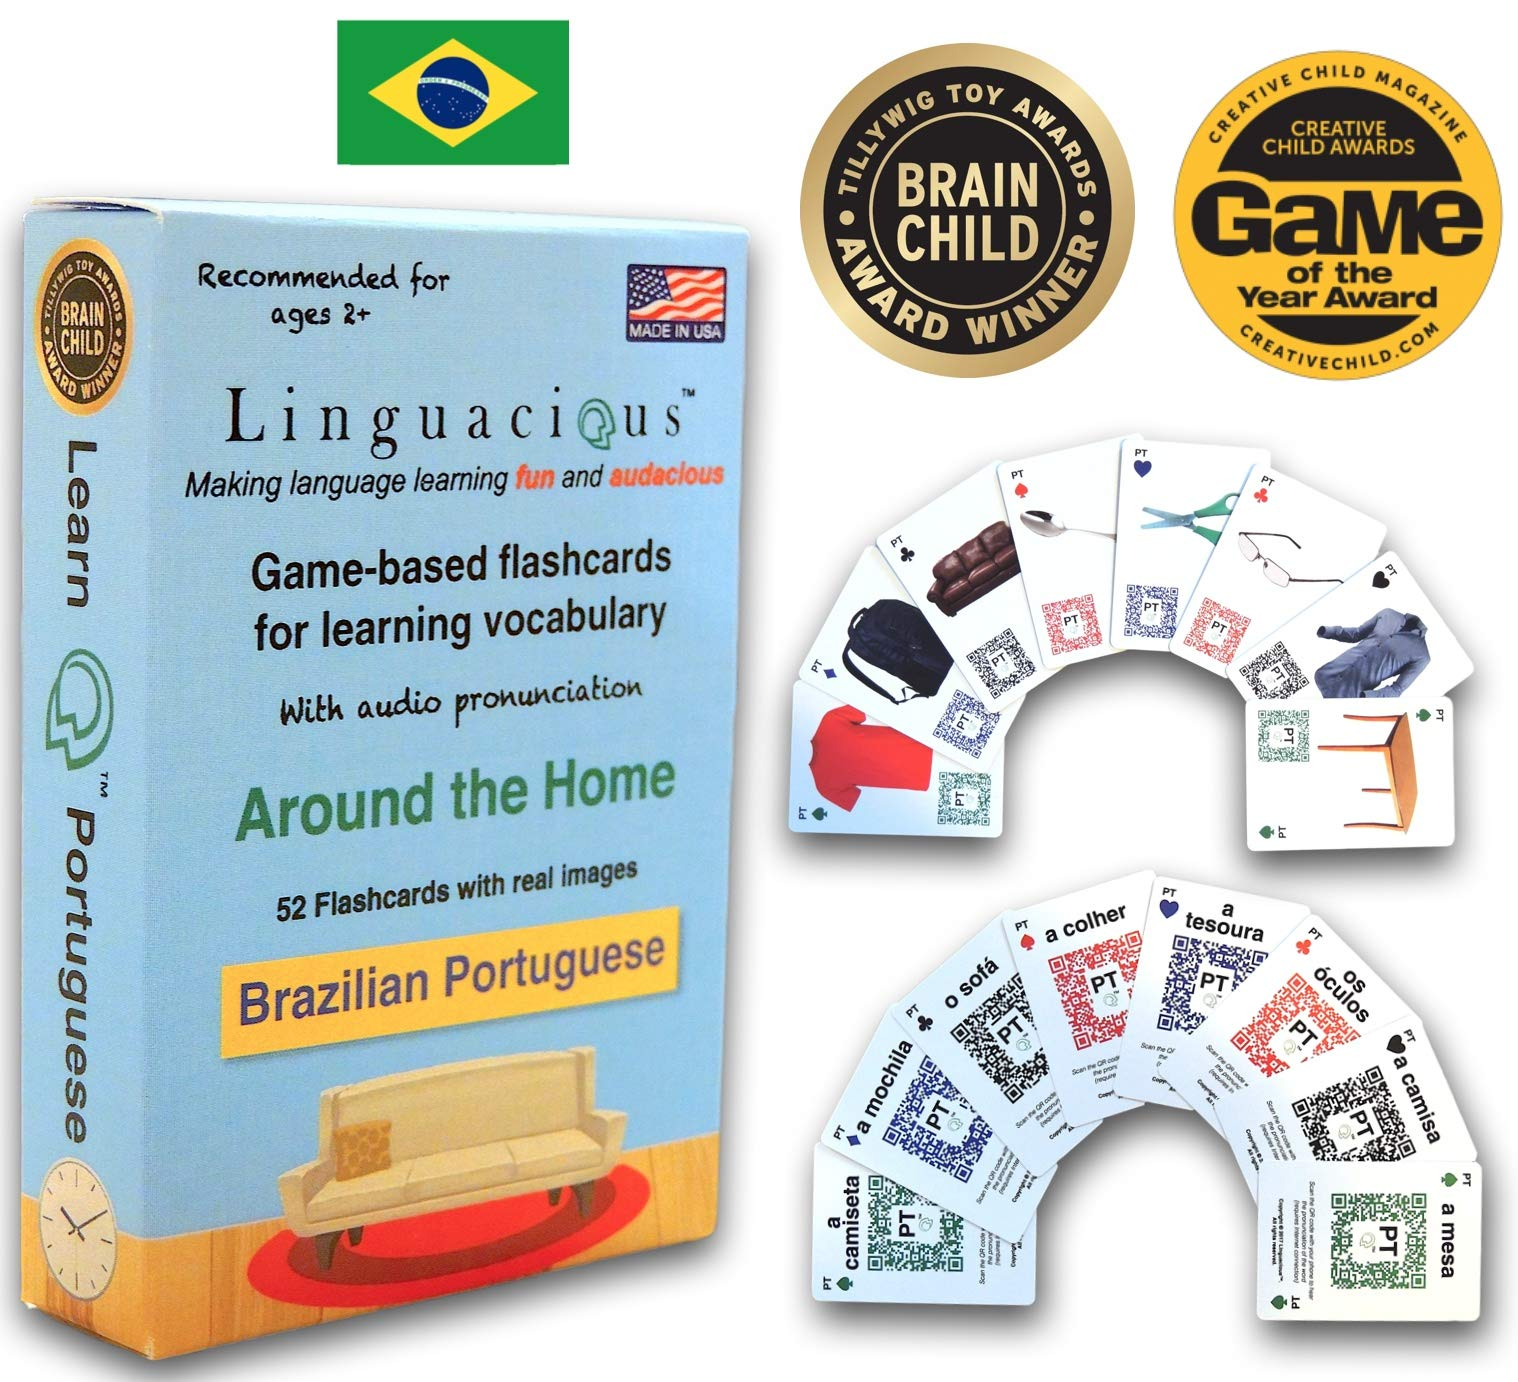 Linguacious Award-Winning Around The Home Portuguese Flashcard Game - The ONLY One with Audio!